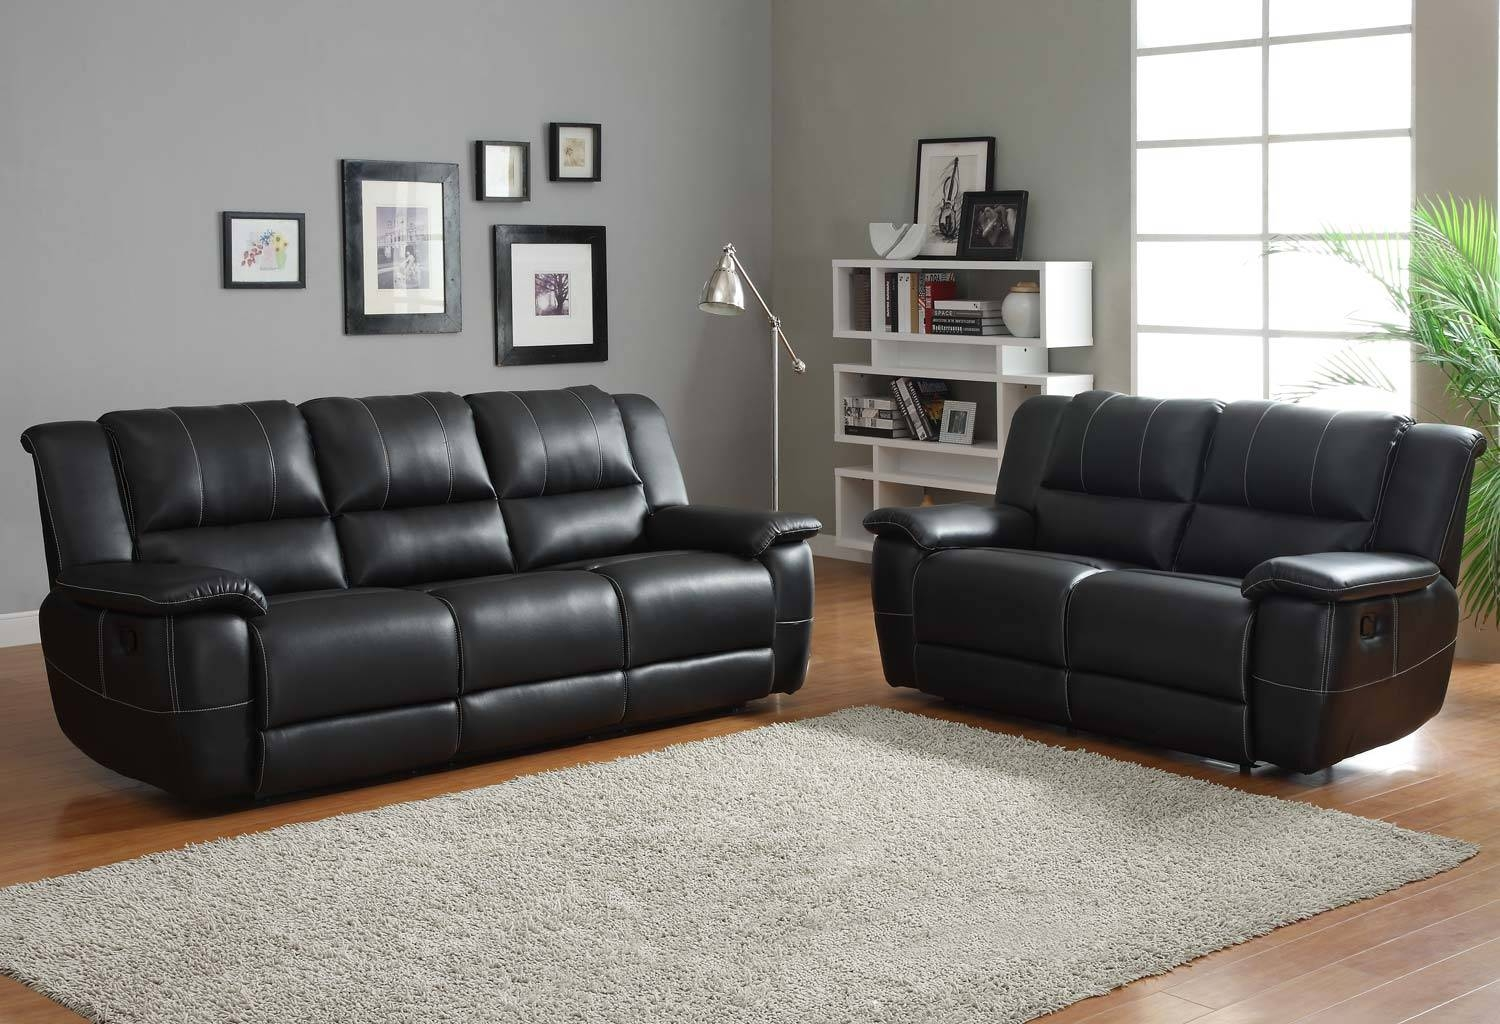 Homelegance Cantrell Reclining Sofa Set   Black   Bonded Leather Regarding Black Leather Sofas And Loveseats (Photo 4 of 15)